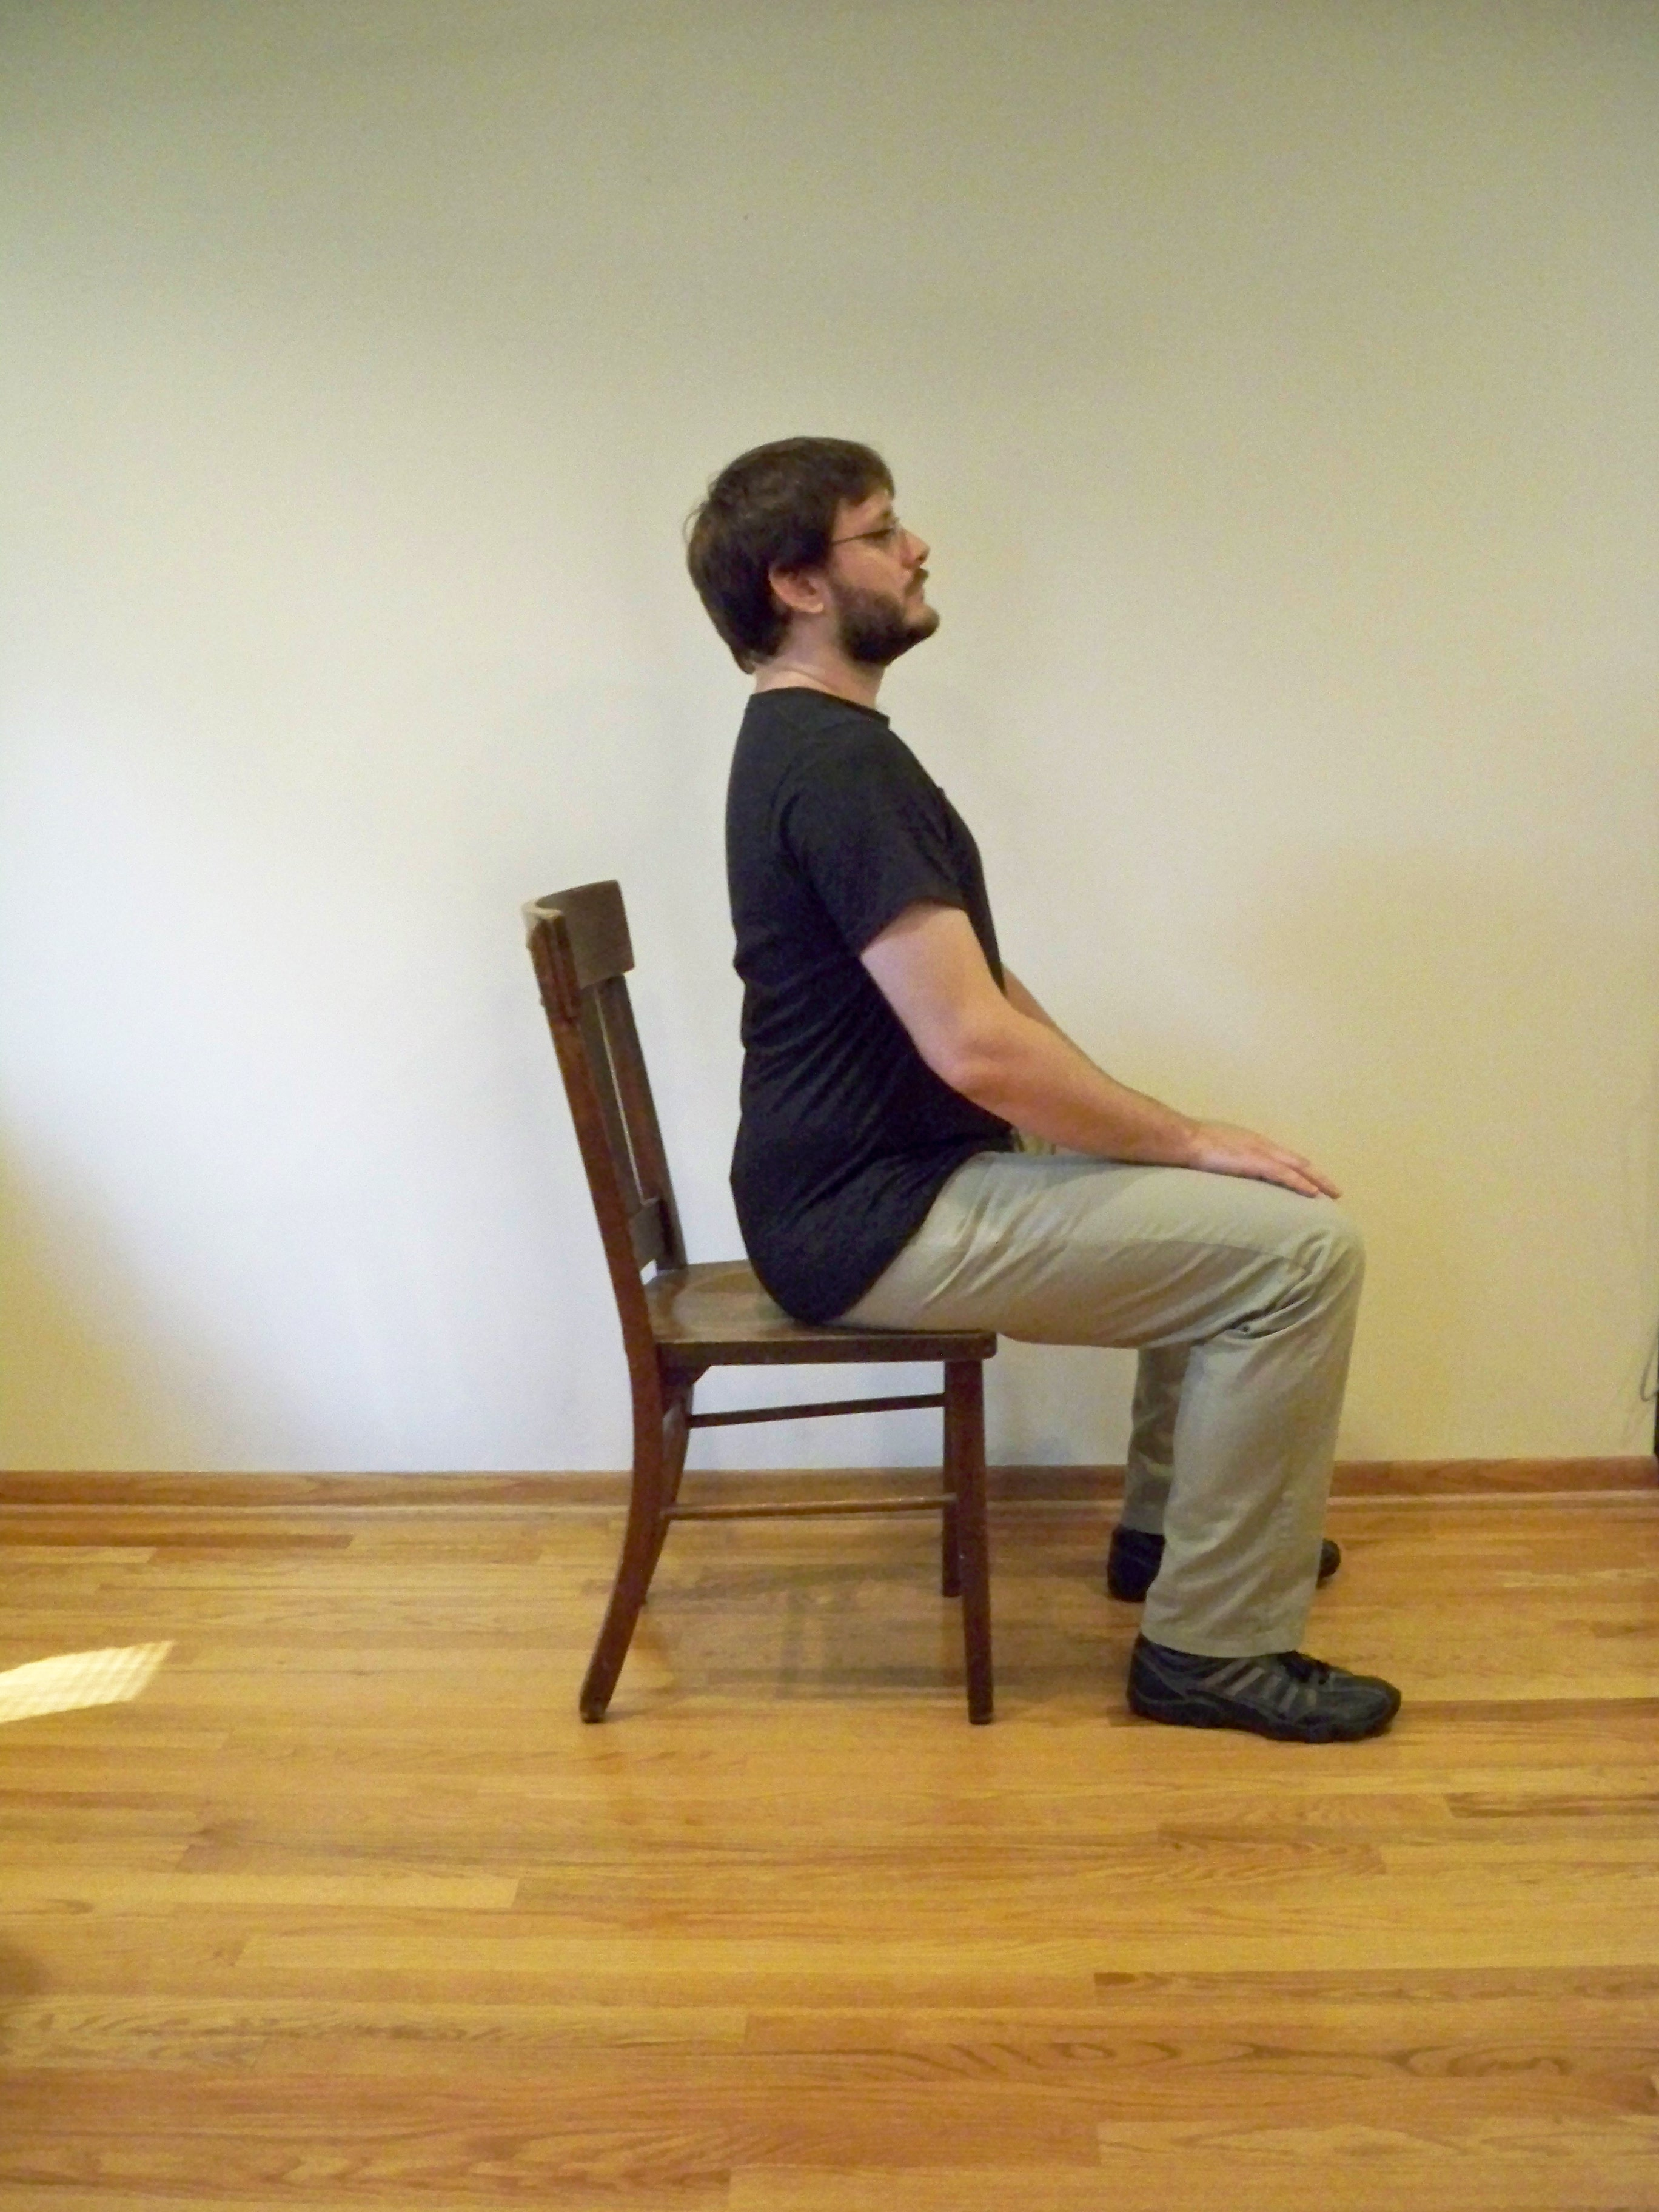 chair stand up trick how to make a wooden seat with gravitysm lesson 6 lifting your center of gravity vs sitting